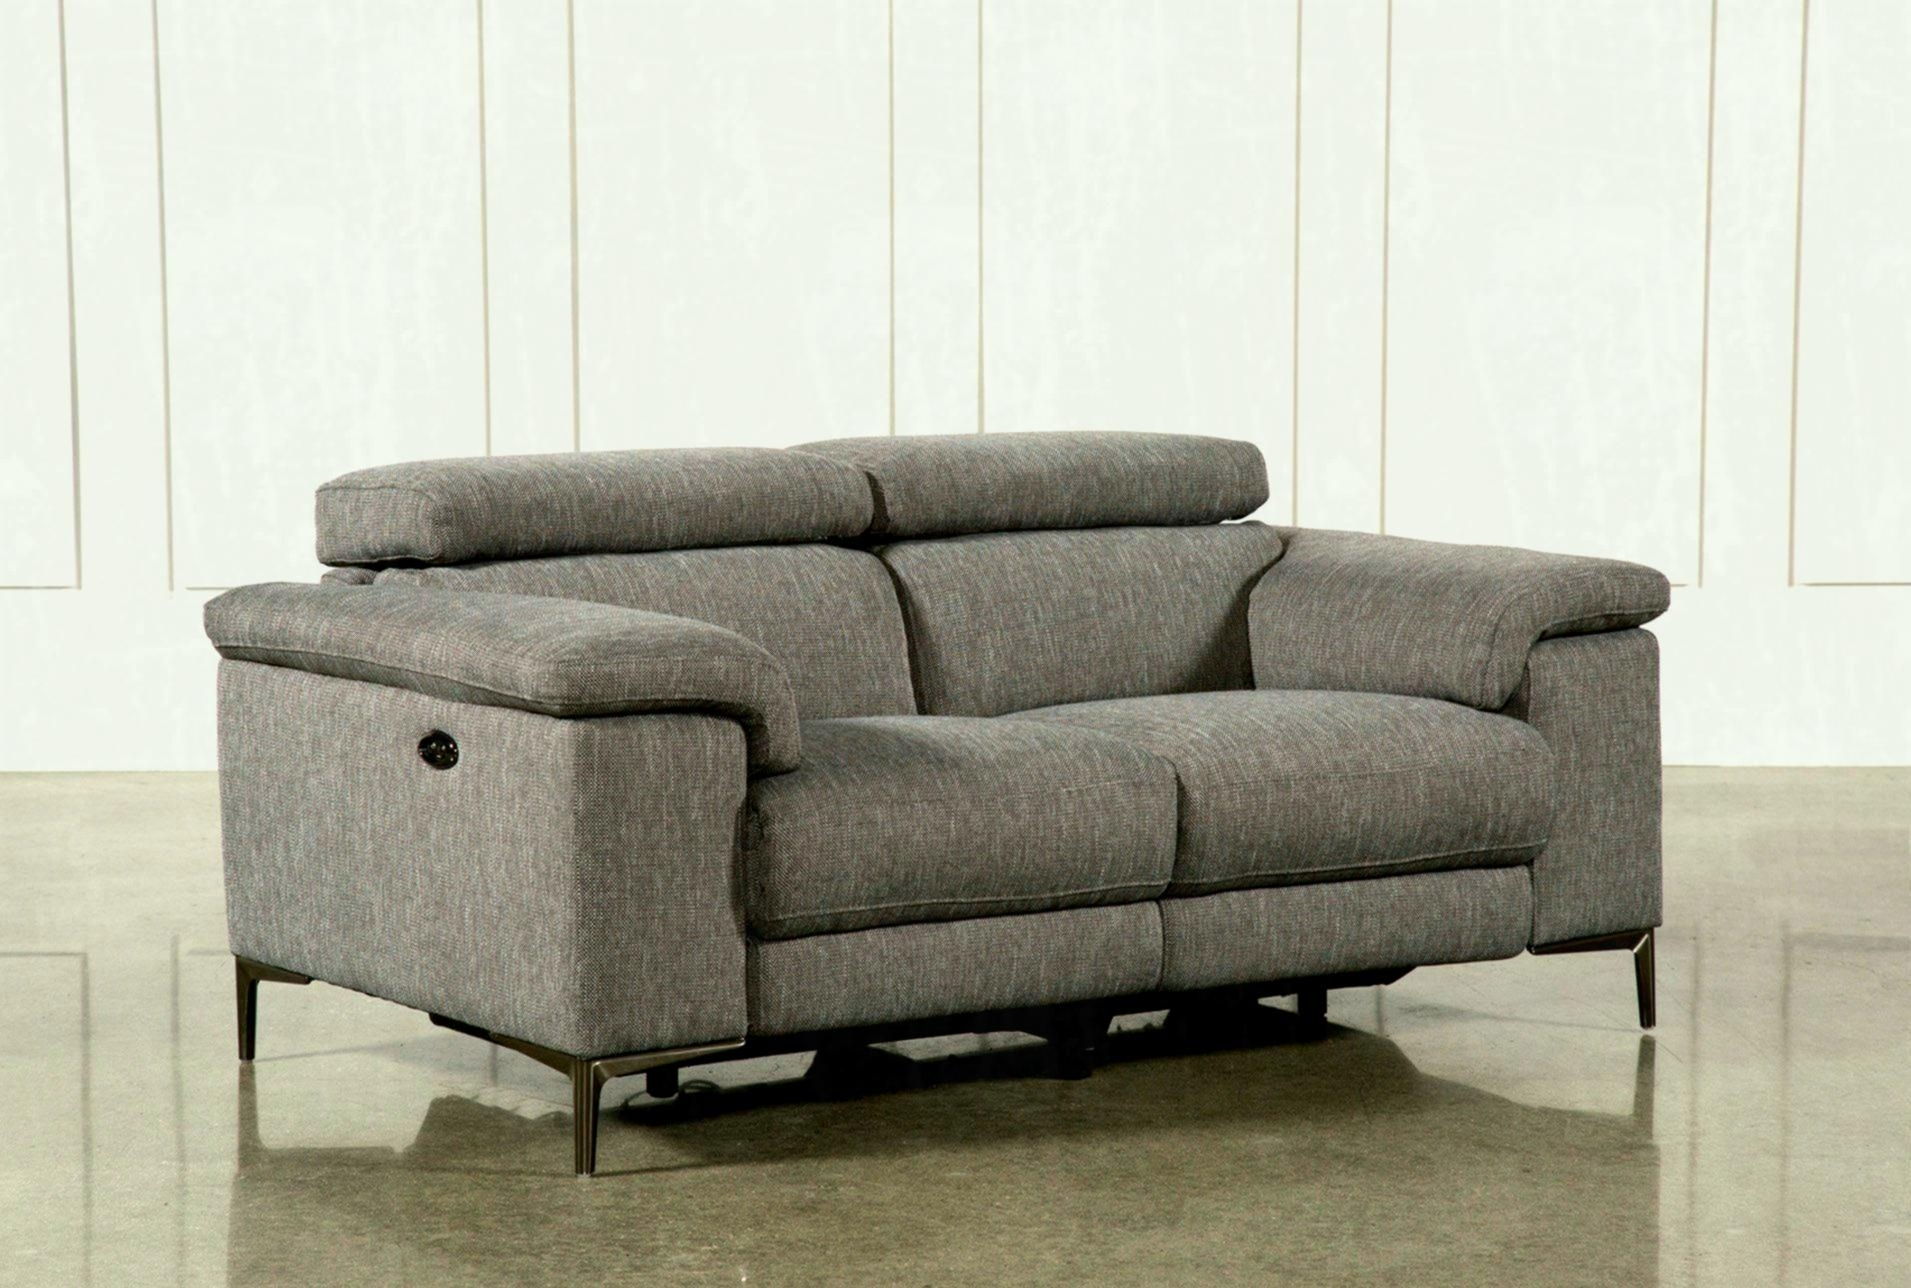 Added To Cart Delano Piece Sectional W Laf Oversized Chaise Living Throughout Delano 2 Piece Sectionals With Laf Oversized Chaise (Image 3 of 25)